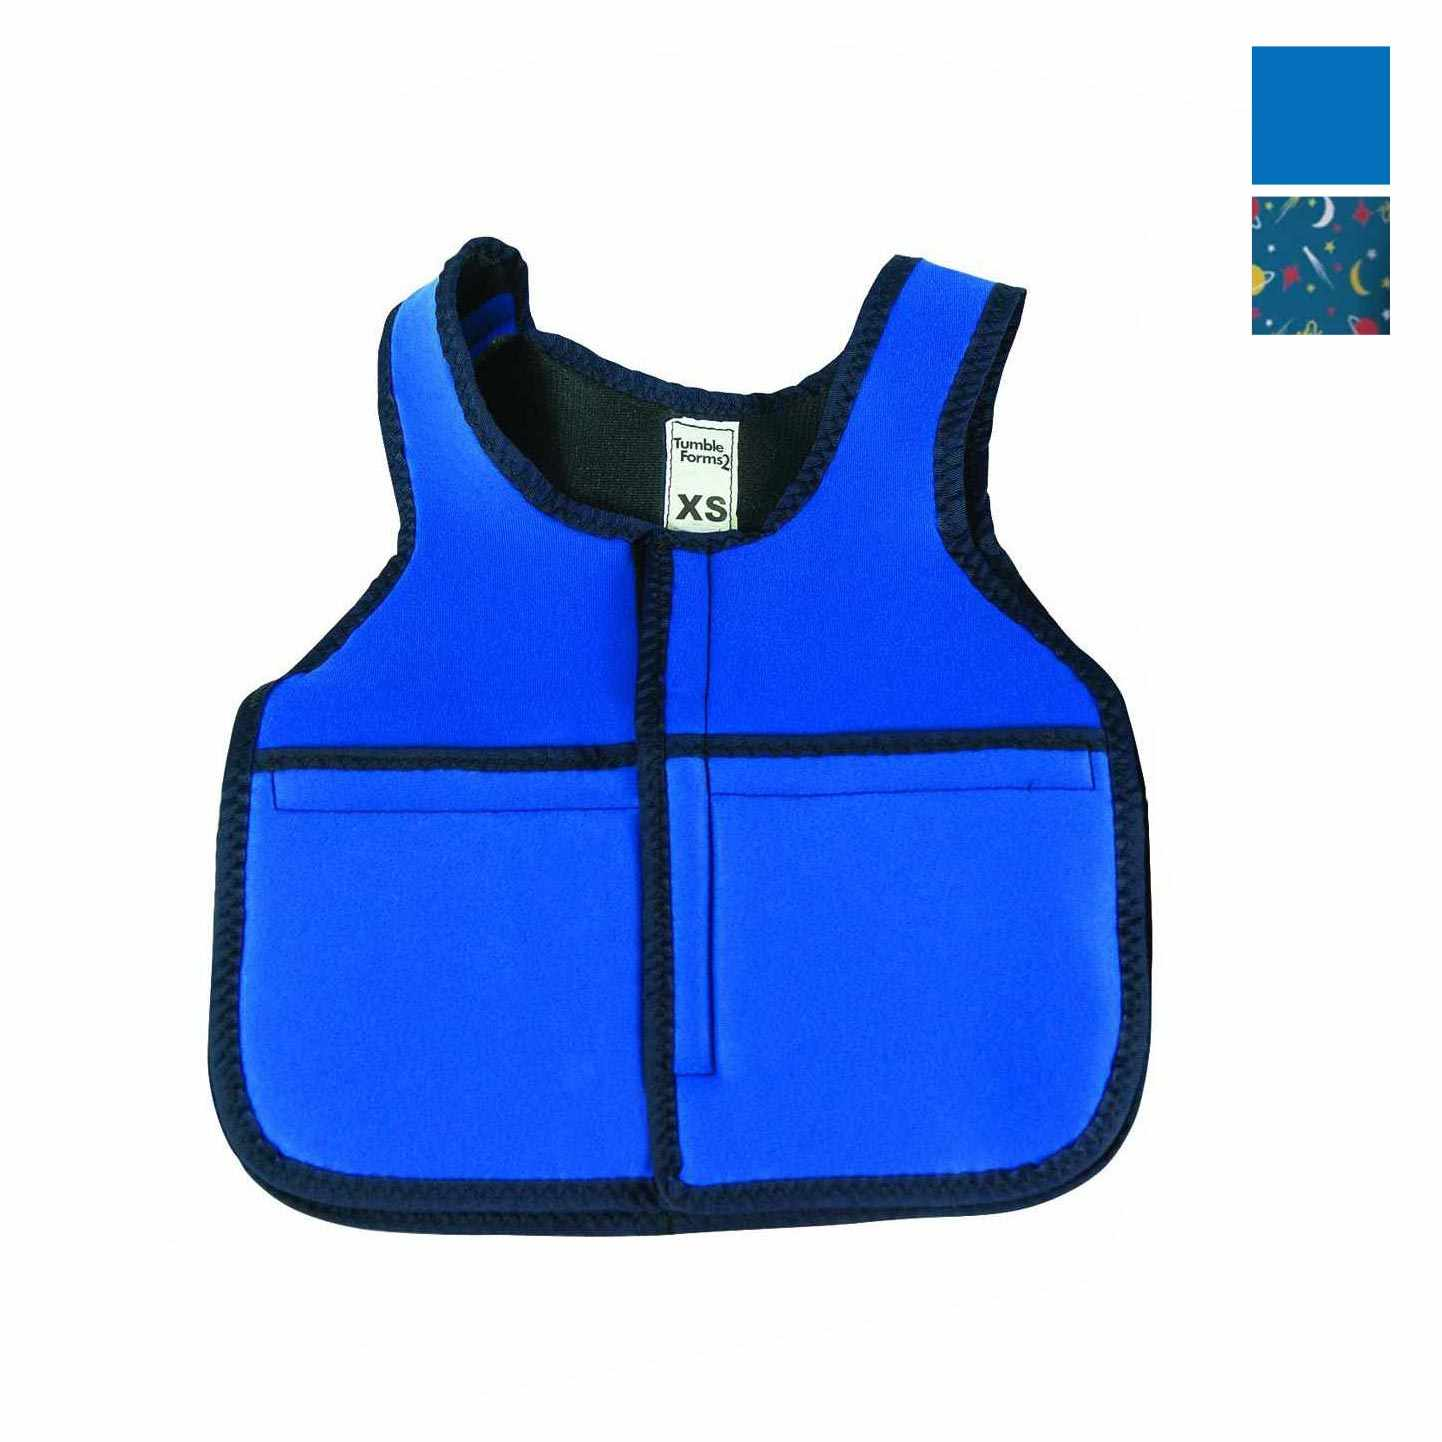 Tumble Forms 2 Weighted Vest | Performance Health